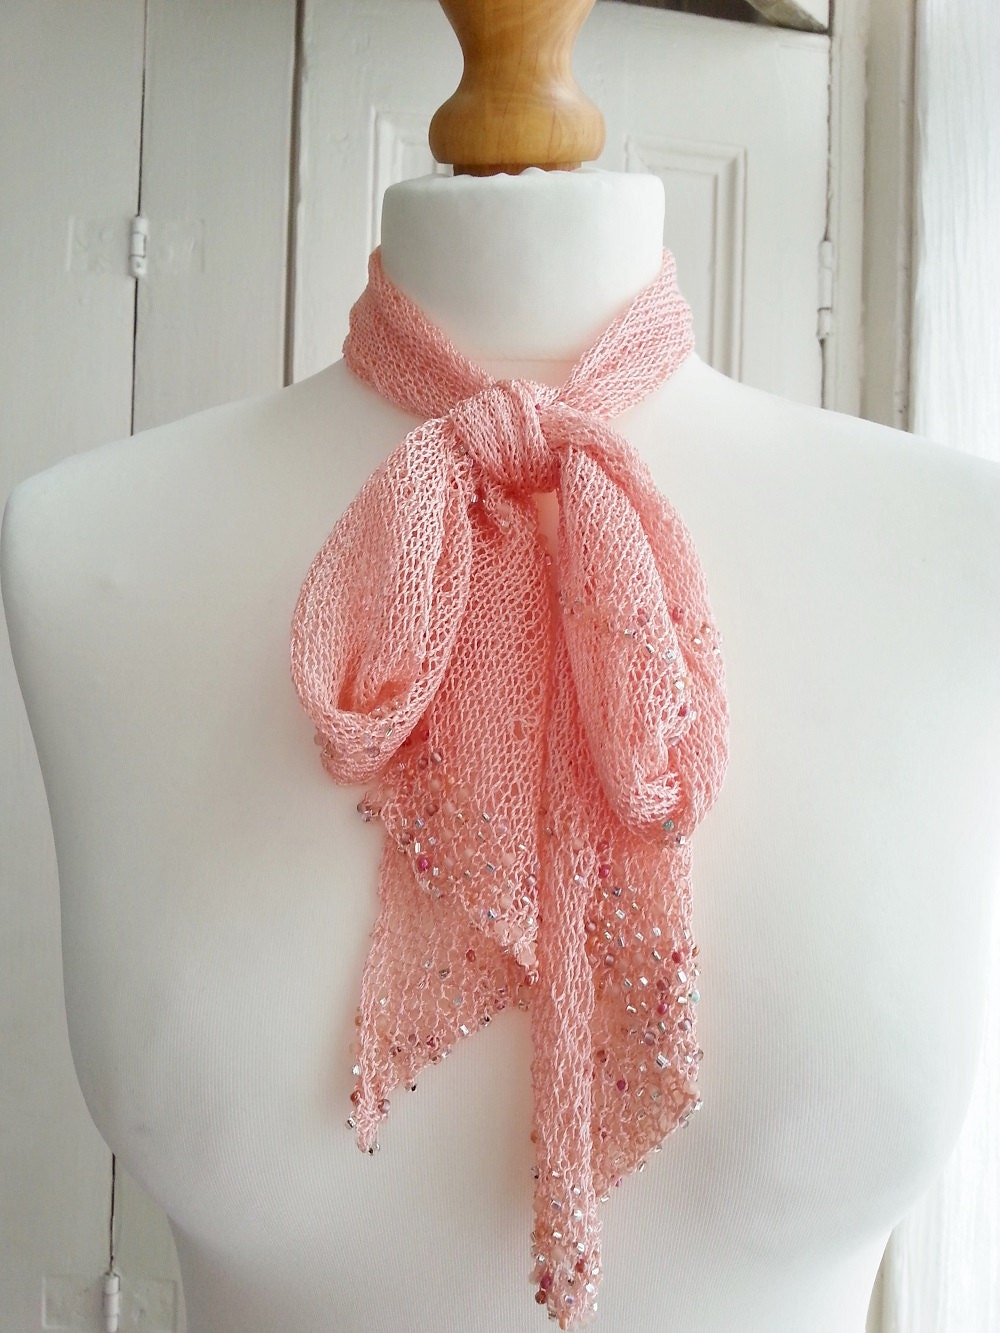 Zelda Scarf Knitting Pattern : Knitting pattern for beaded bias knitted evening scarf that